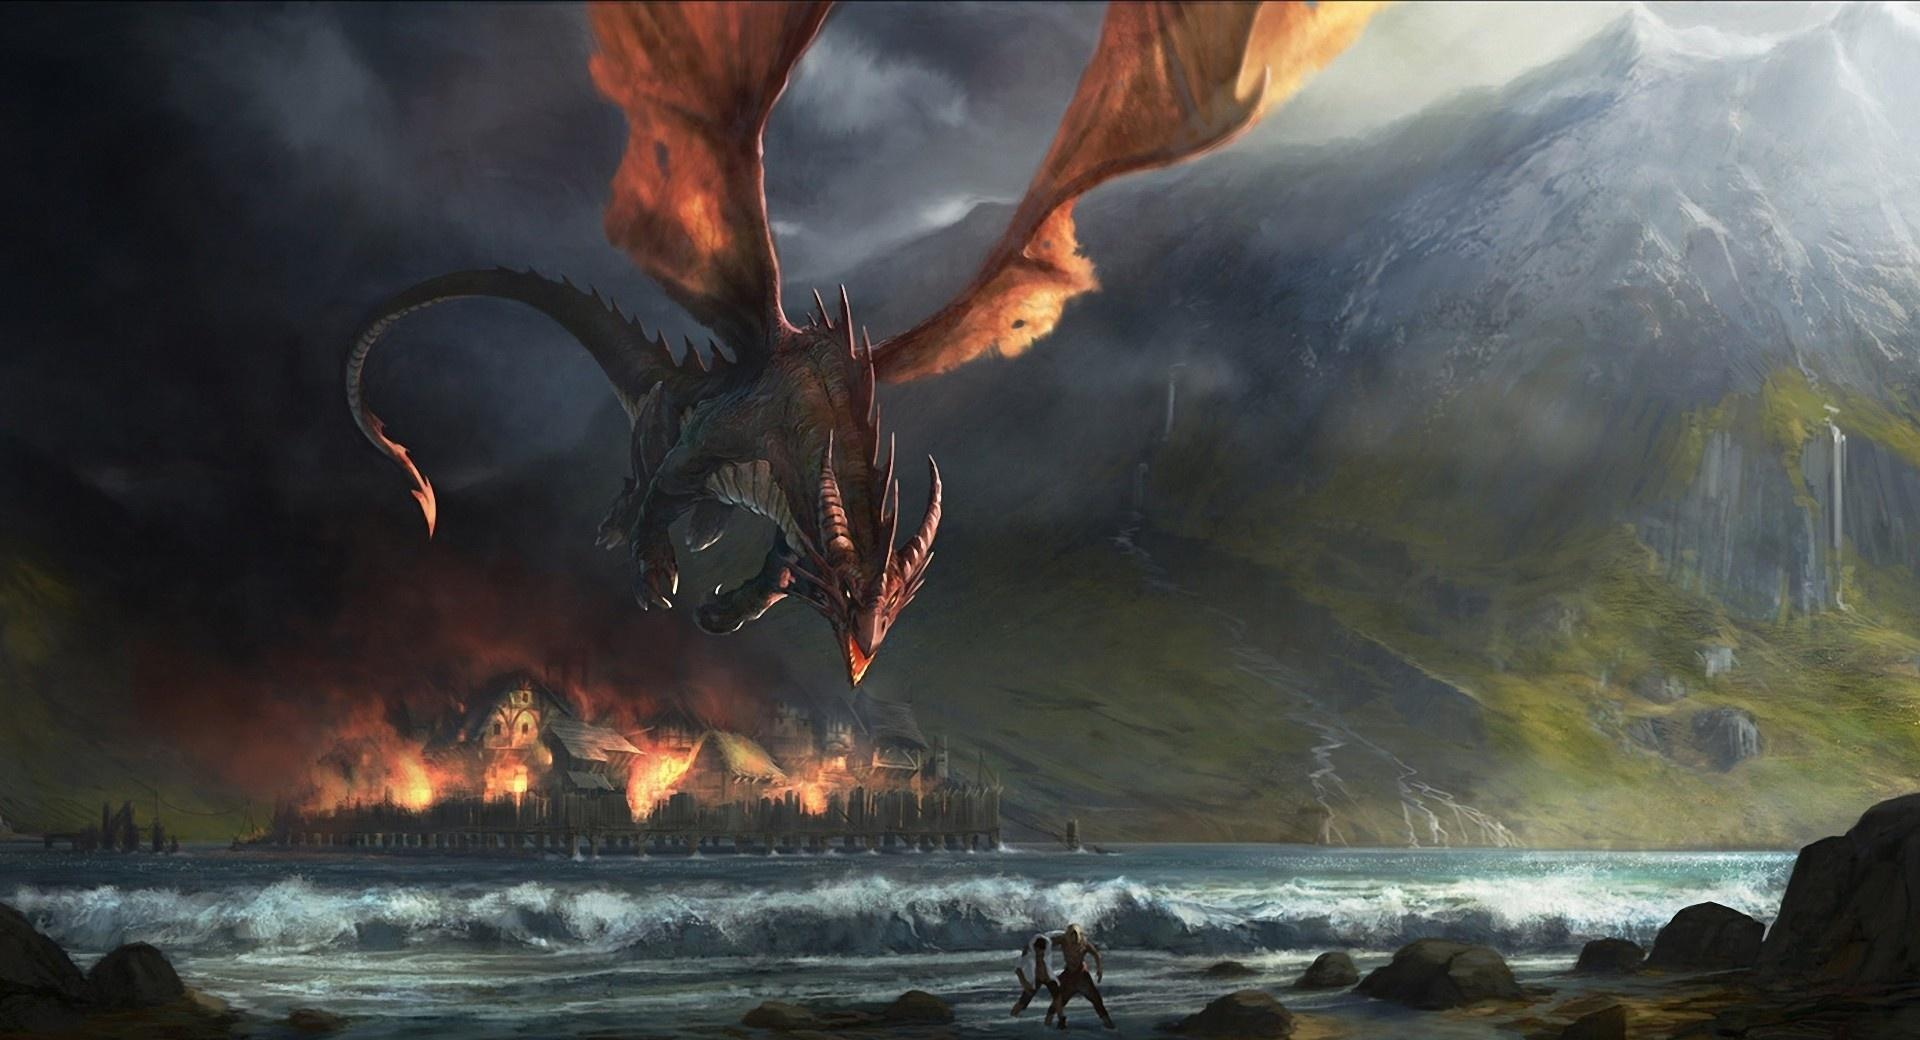 Wings Dragon Fire at 1152 x 864 size wallpapers HD quality